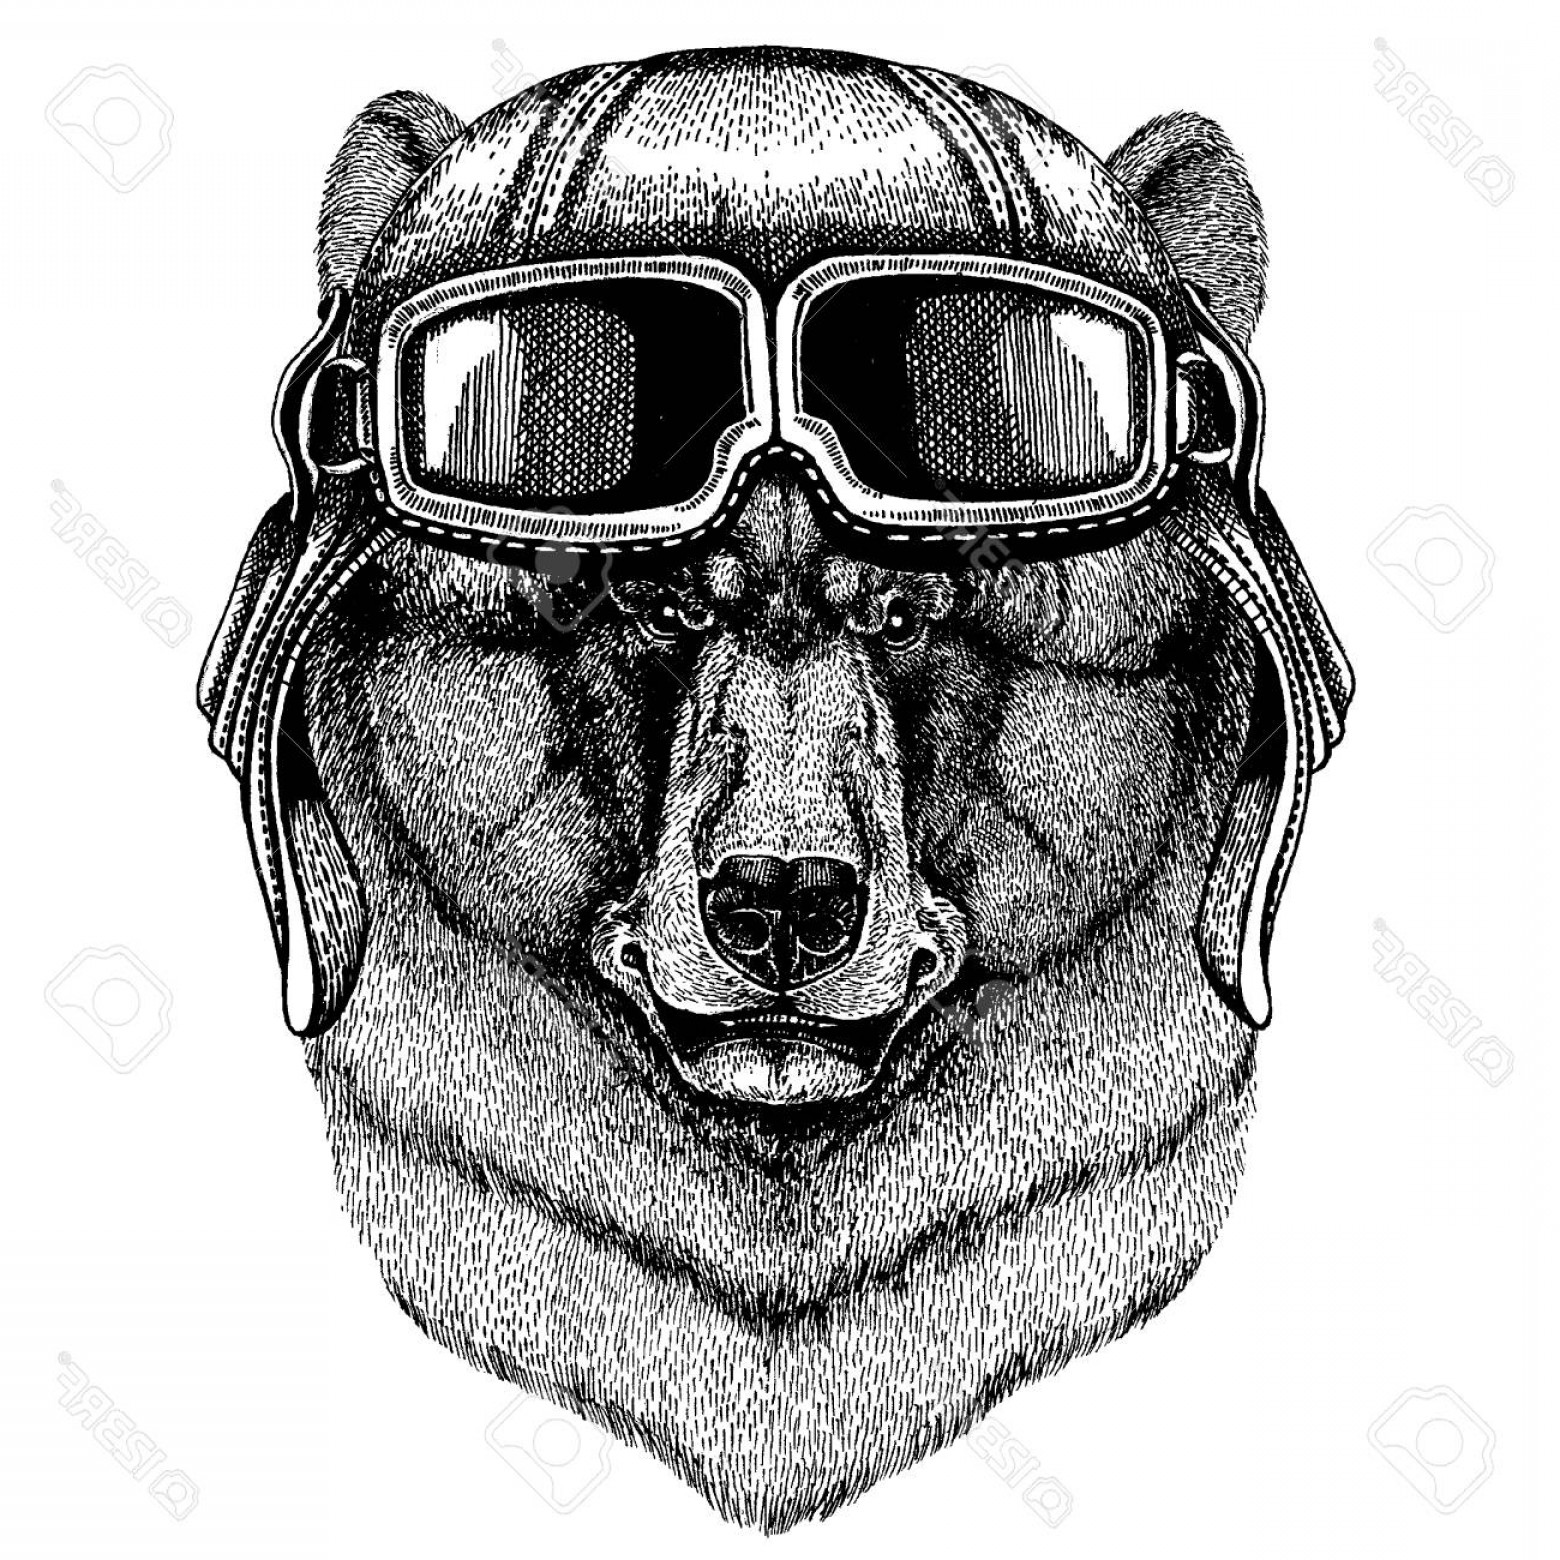 Aviator Vector Ink Drawings: Photostock Vector Animal Wearing Aviator Helmet With Glasses Vector Picture Black Bear Hand Drawn Illustration For Tat